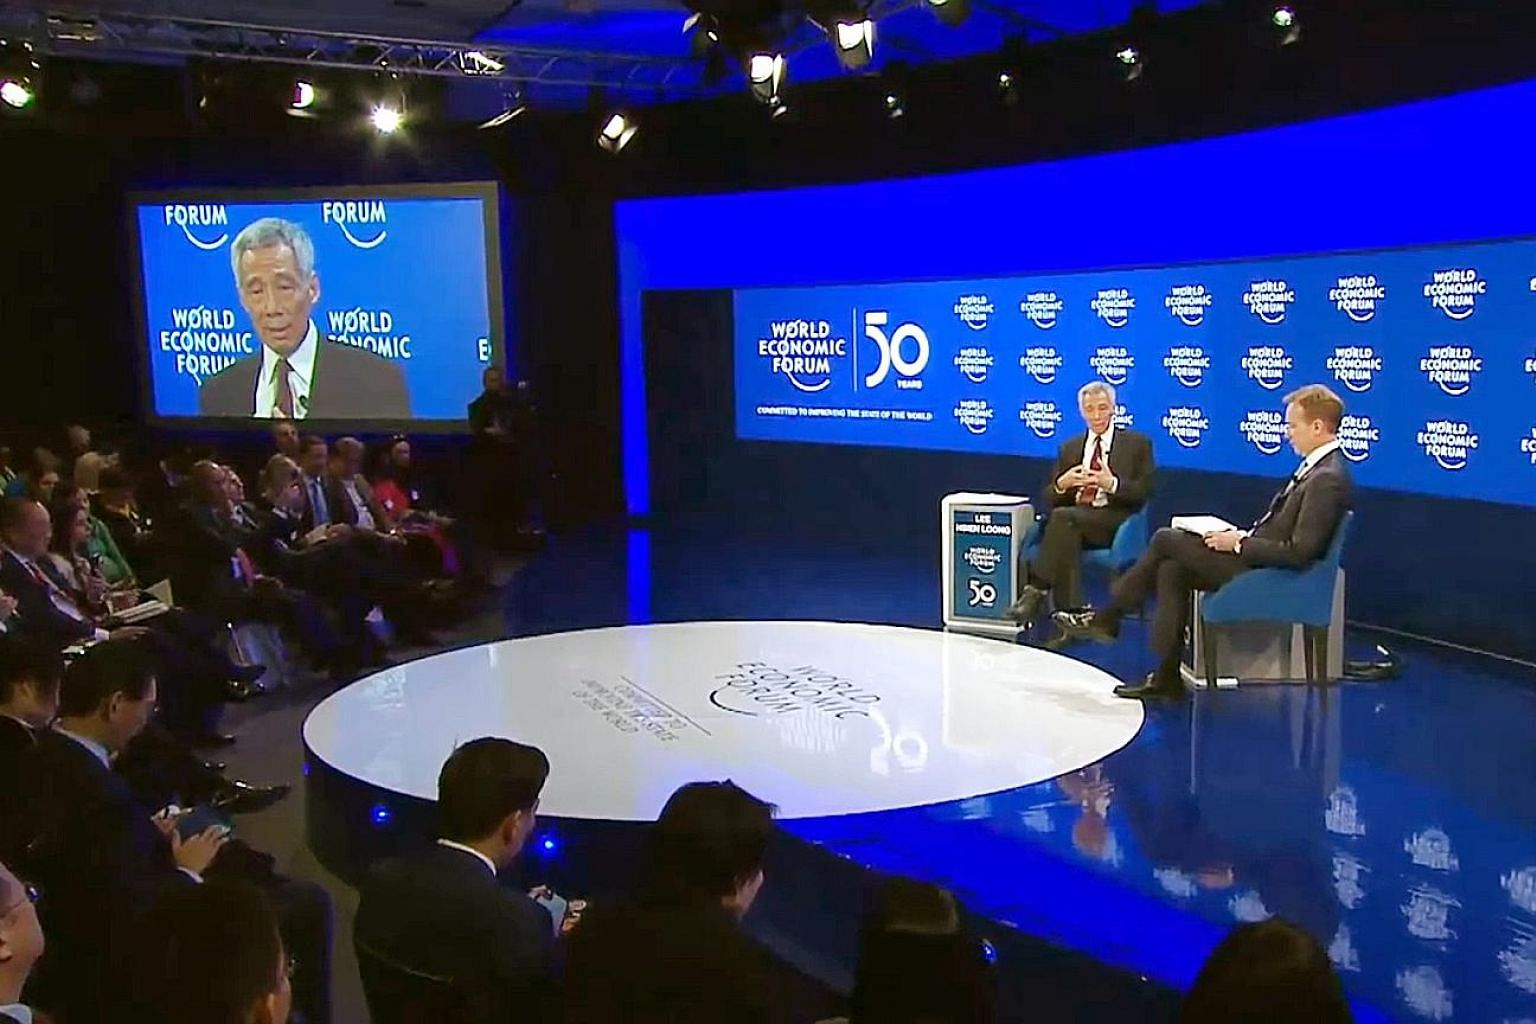 Prime Minister Lee Hsien Loong, during a conversation with World Economic Forum president Borge Brende in Davos last Wednesday, pointed to how a lack of mutual trust could lead to countries deciding that they needed to develop their own technologies